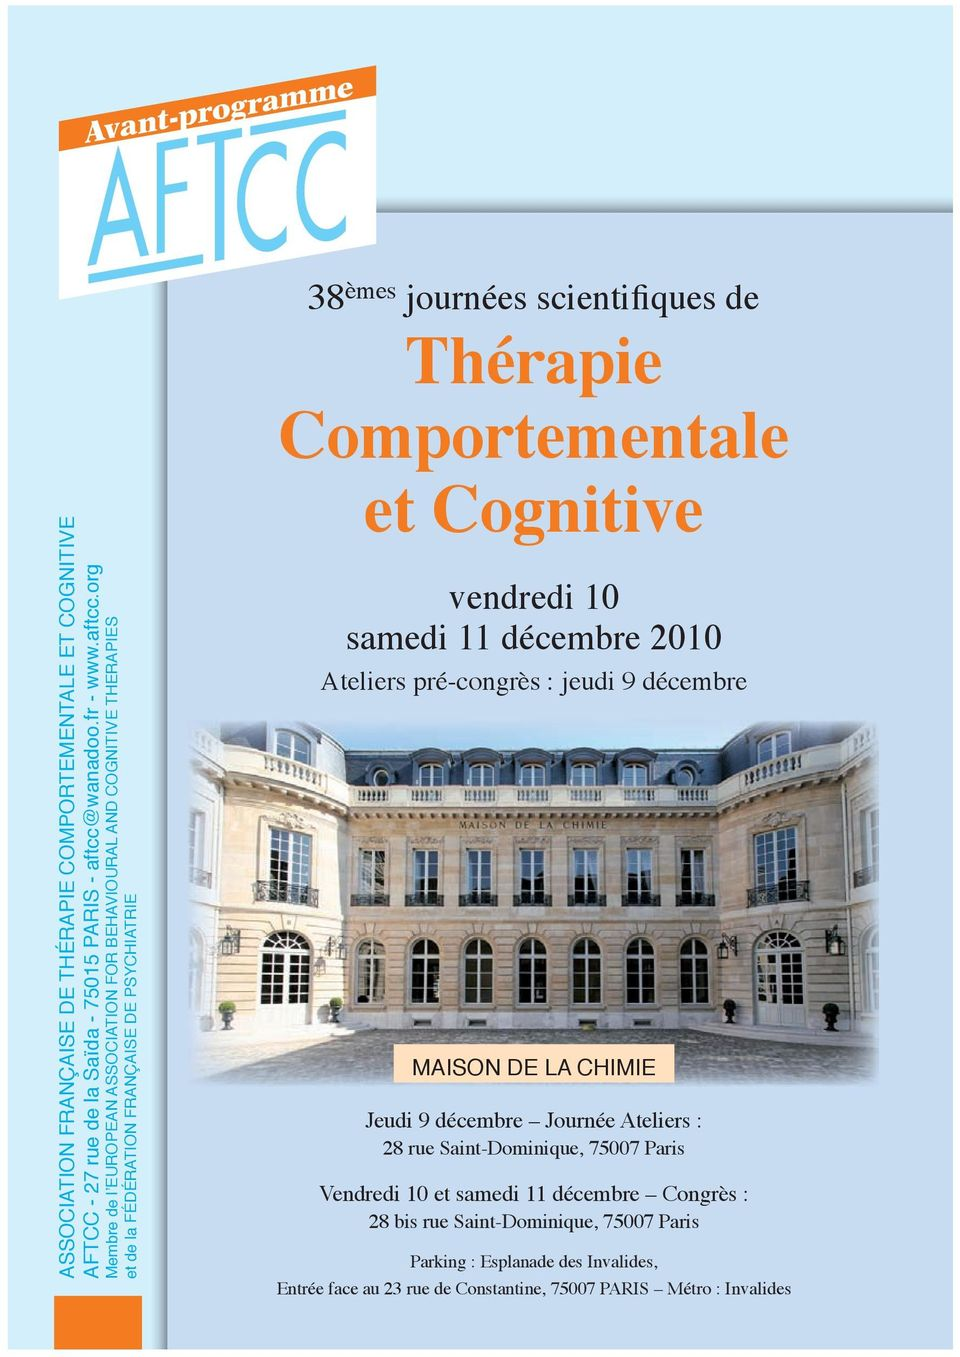 org Membre de l EUROPEAN ASSOCIATION FOR BEHAVIOURAL AND COGNITIVE THERAPIES et de la FÉDÉRATION FRANÇAISE DE PSYCHIATRIE 38 èmes journées scientifiques de Thérapie